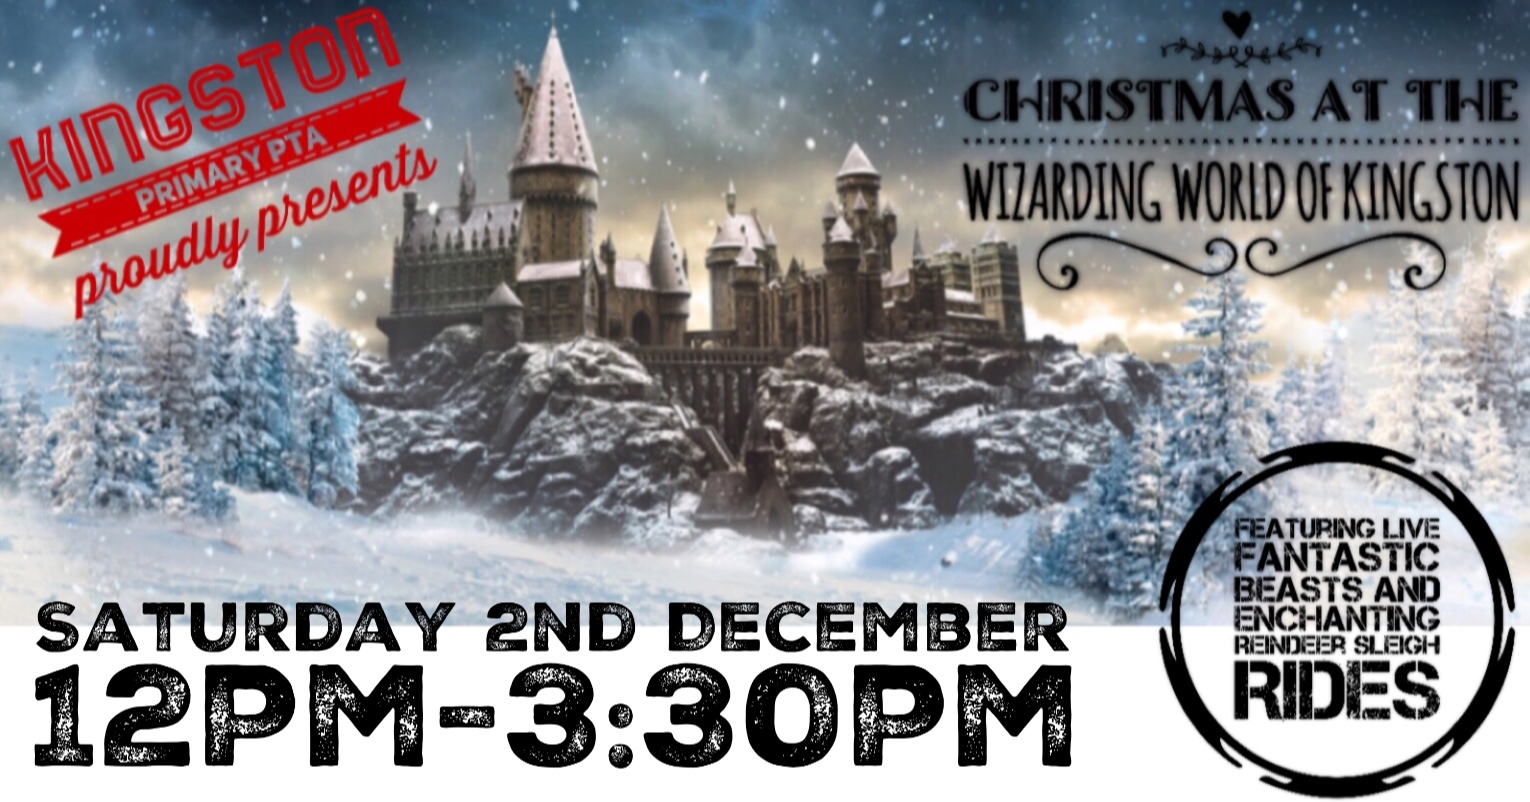 Christmas at the Wizarding World of Kingston